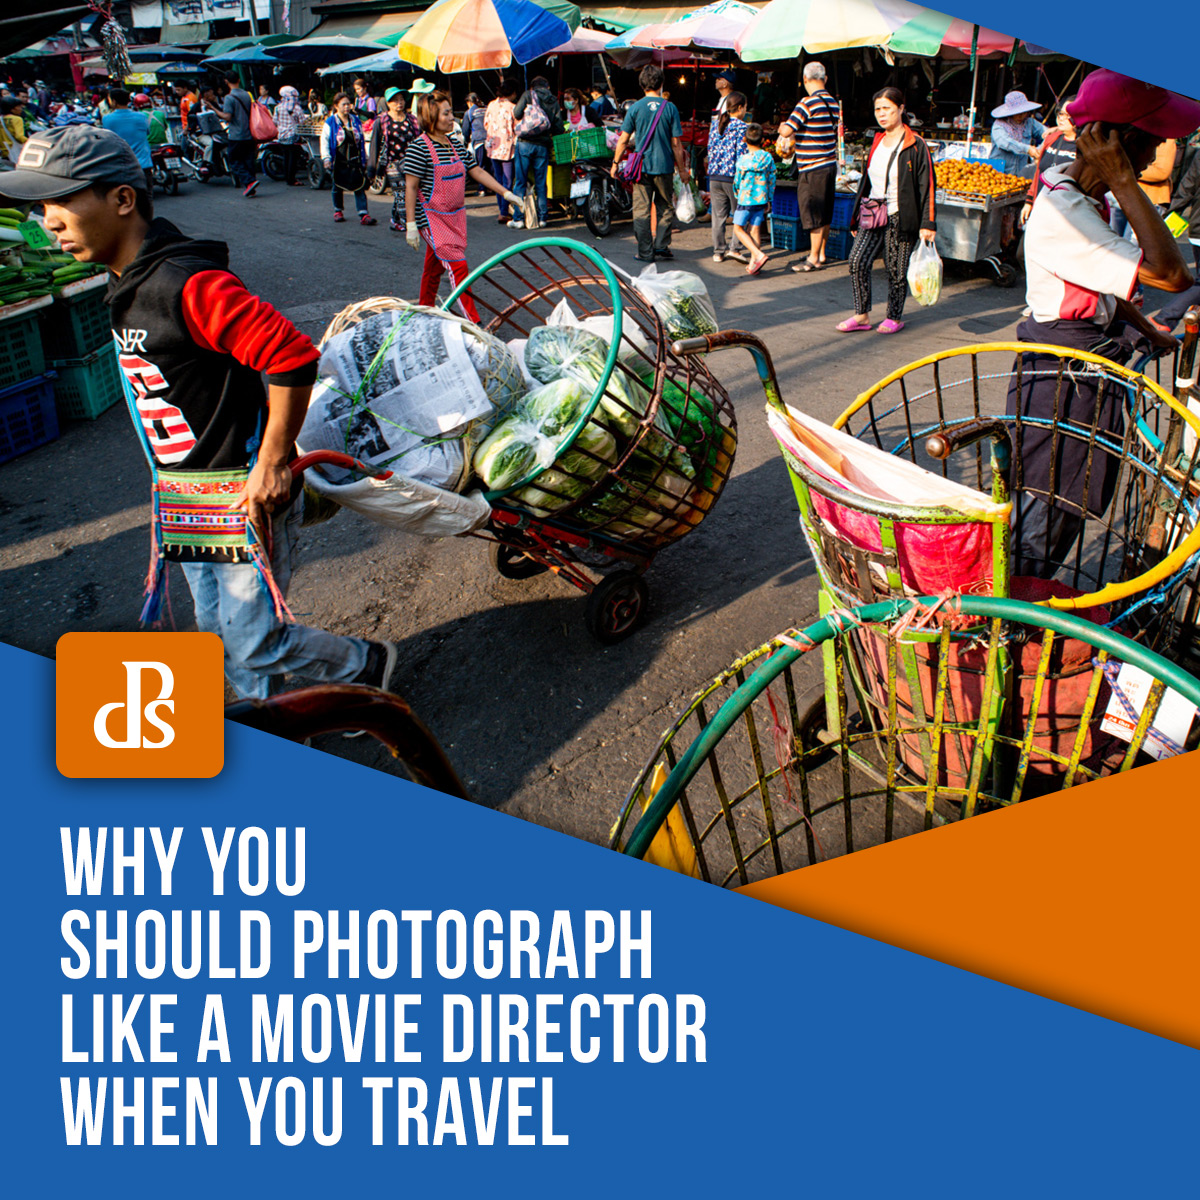 Why You Should Photograph Like a Movie Director When You Travel